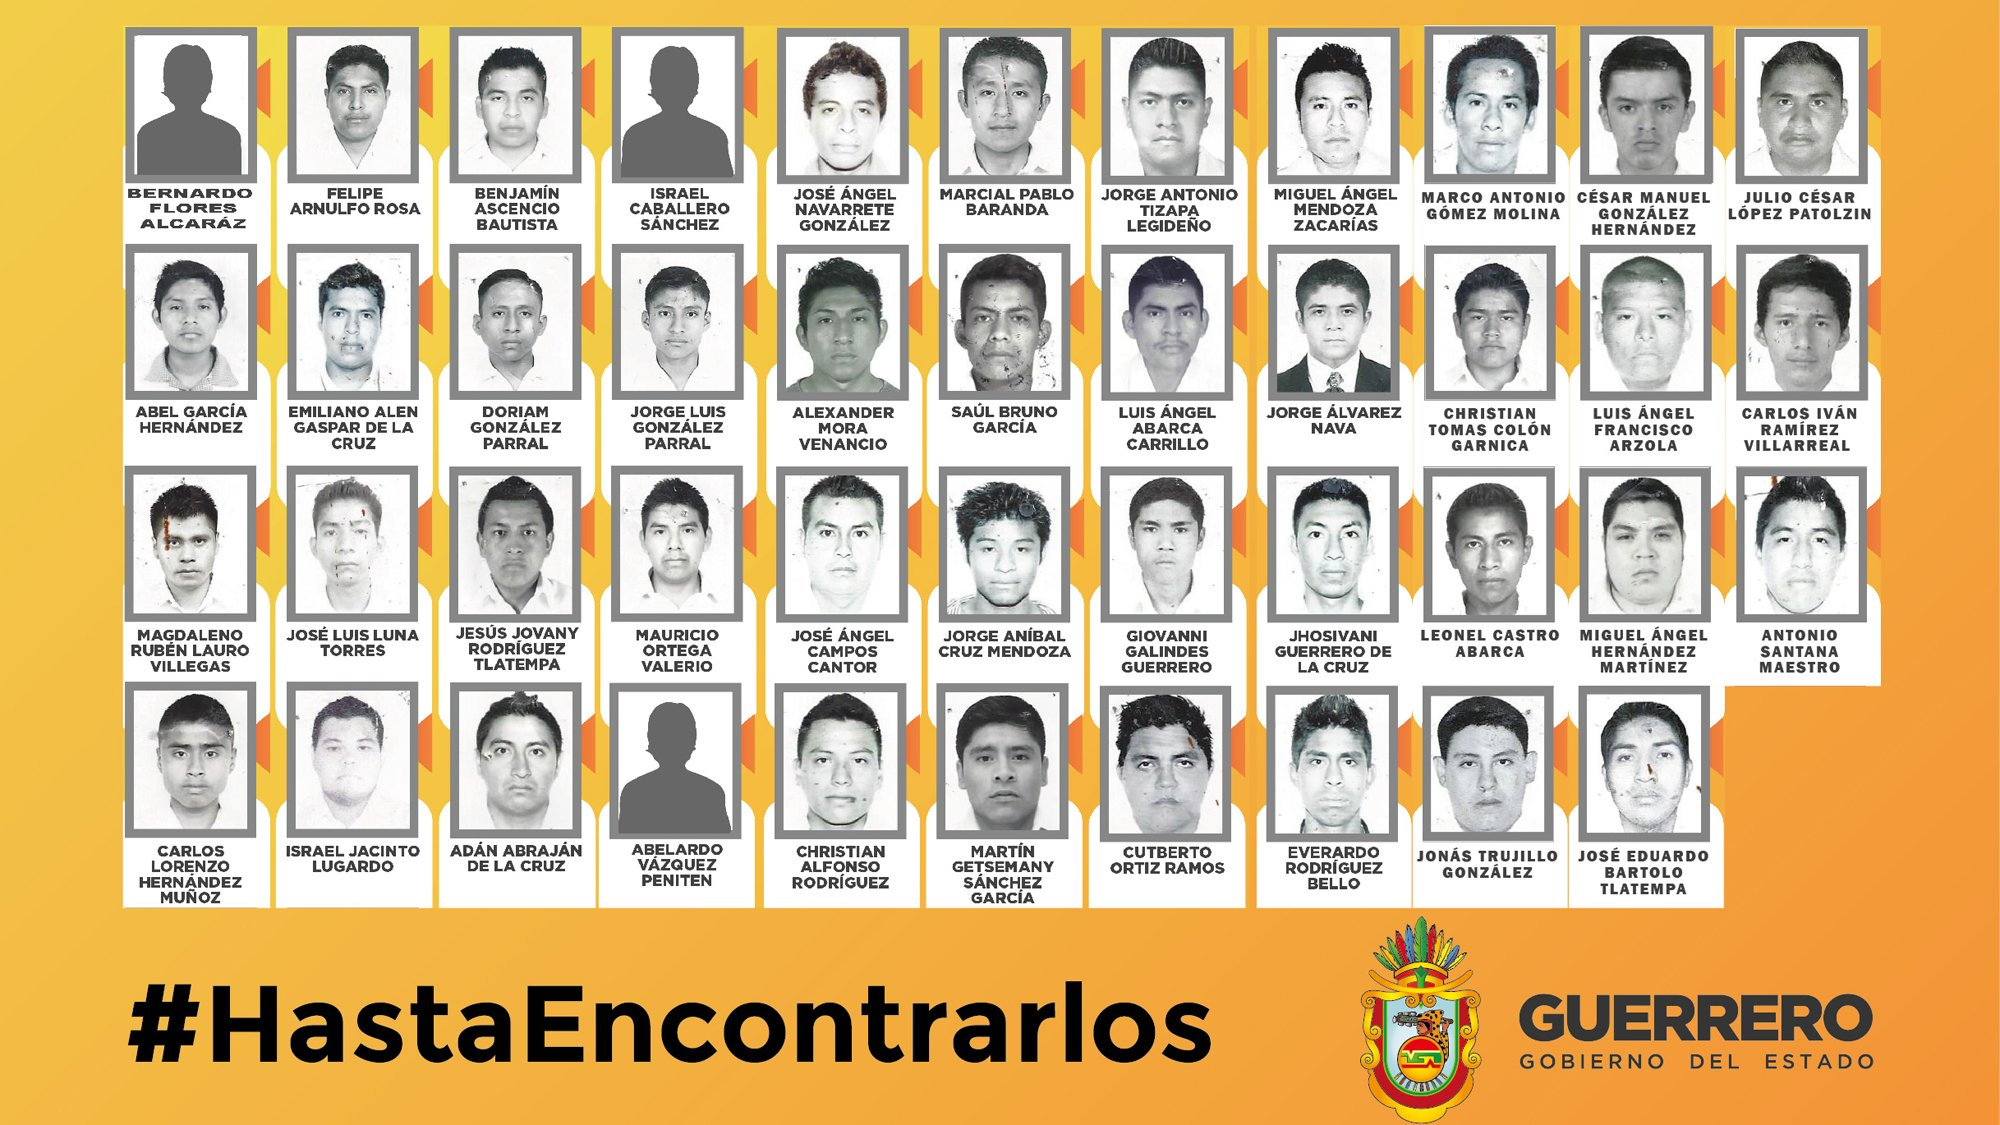 Forty-three students remain missing after armed men ambushed buses carrying students in southern Mexico on on September 26 .The Mexican state of Guerrero posted images and offered a reward of 1 million pesos ($74,000) for information leading to the missing students. Images of three missing students were not available. Credit:Guerrero State Government